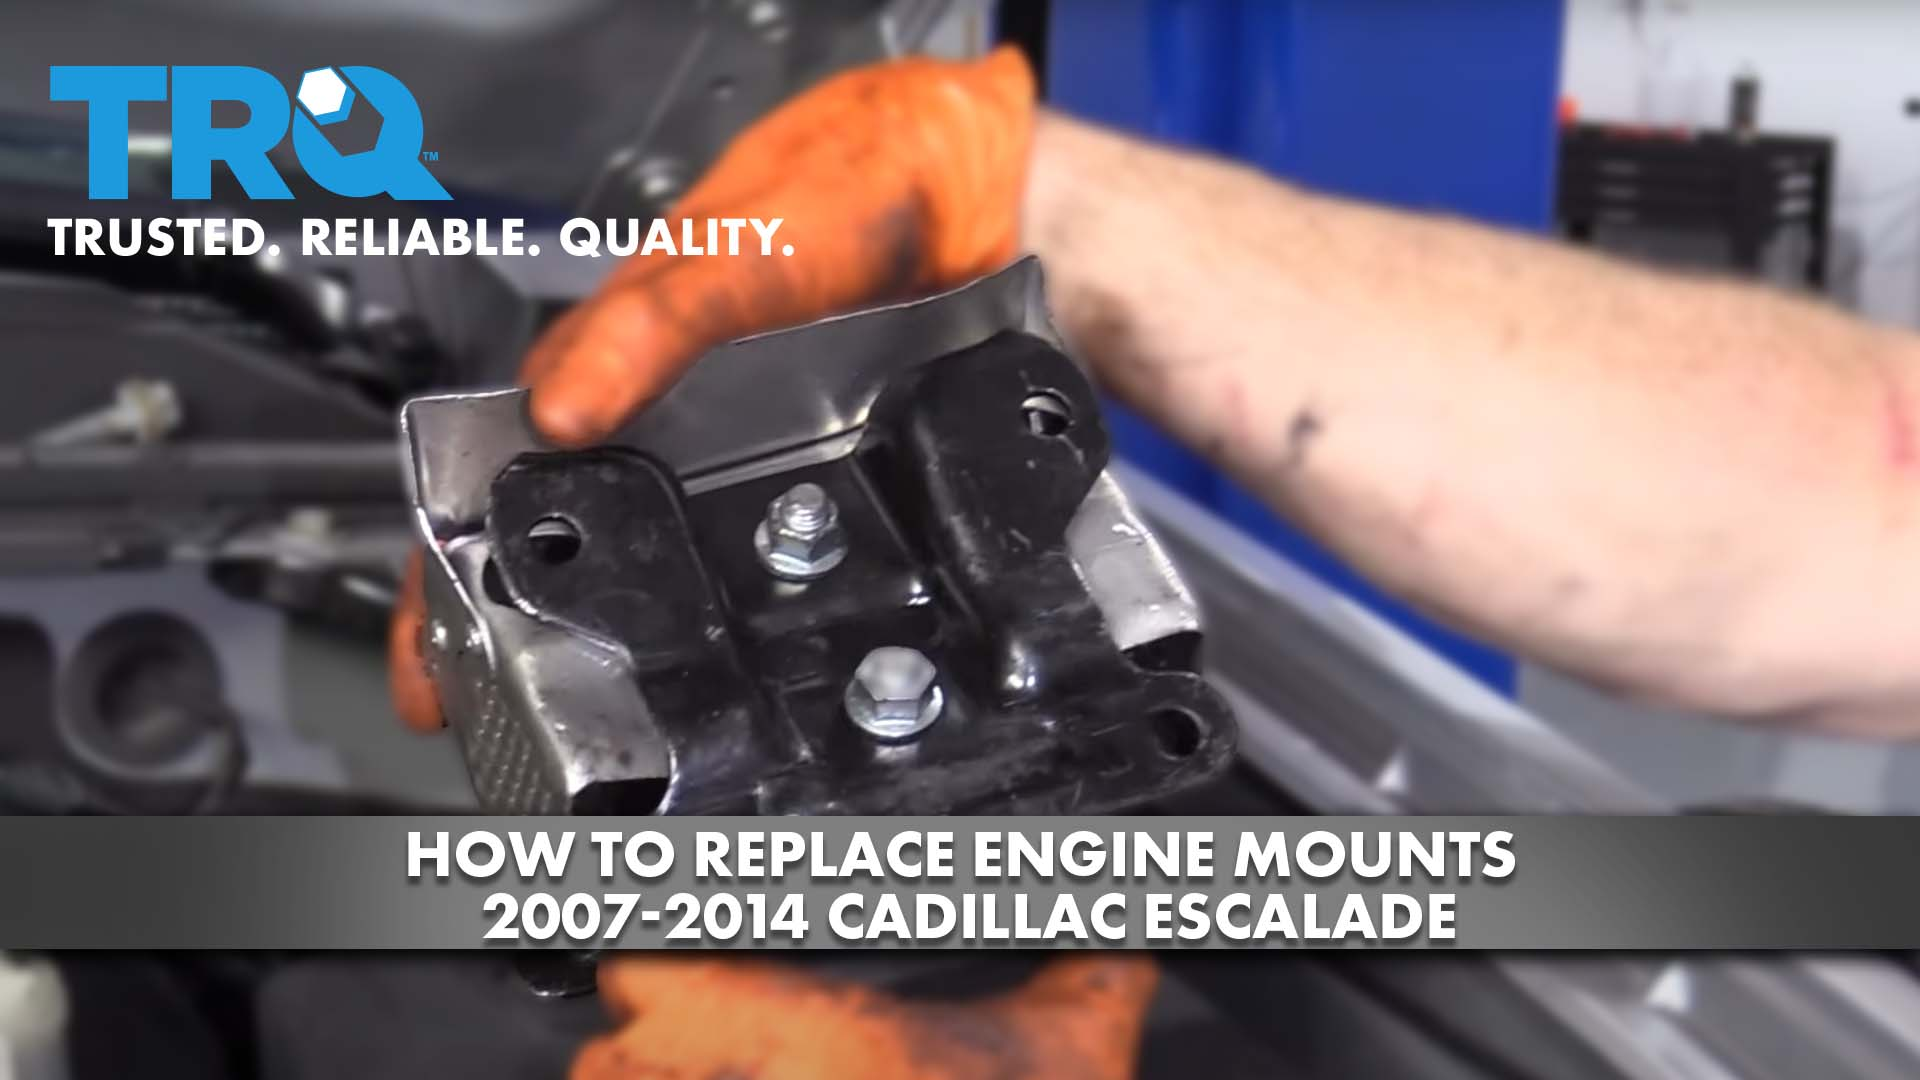 How to Replace Engine Mounts 2007-14 Cadillac Escalade